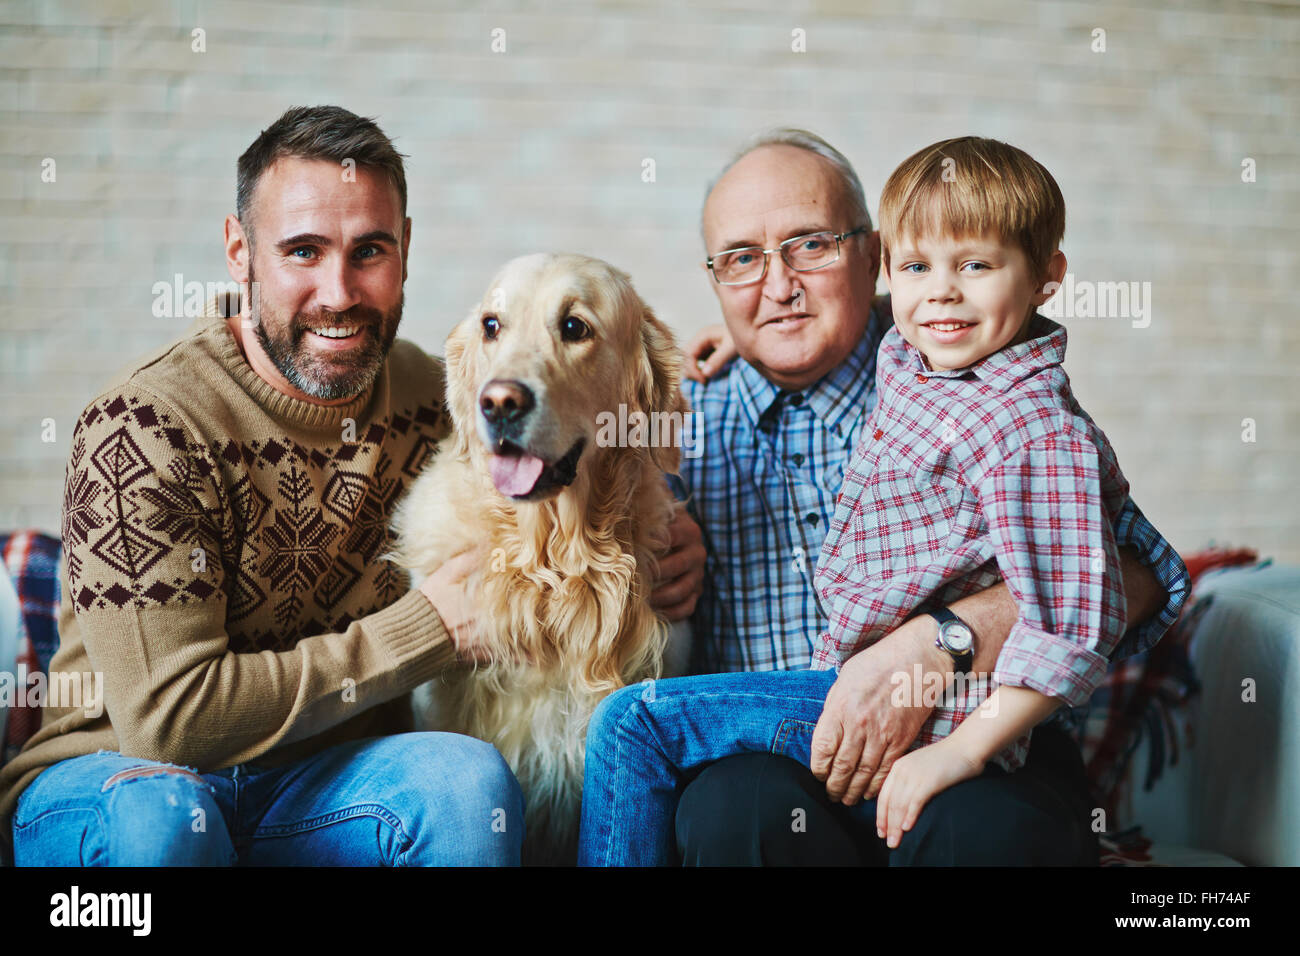 Mature and young men, youngster in casual-wear and fluffy pet looking at camera - Stock Image